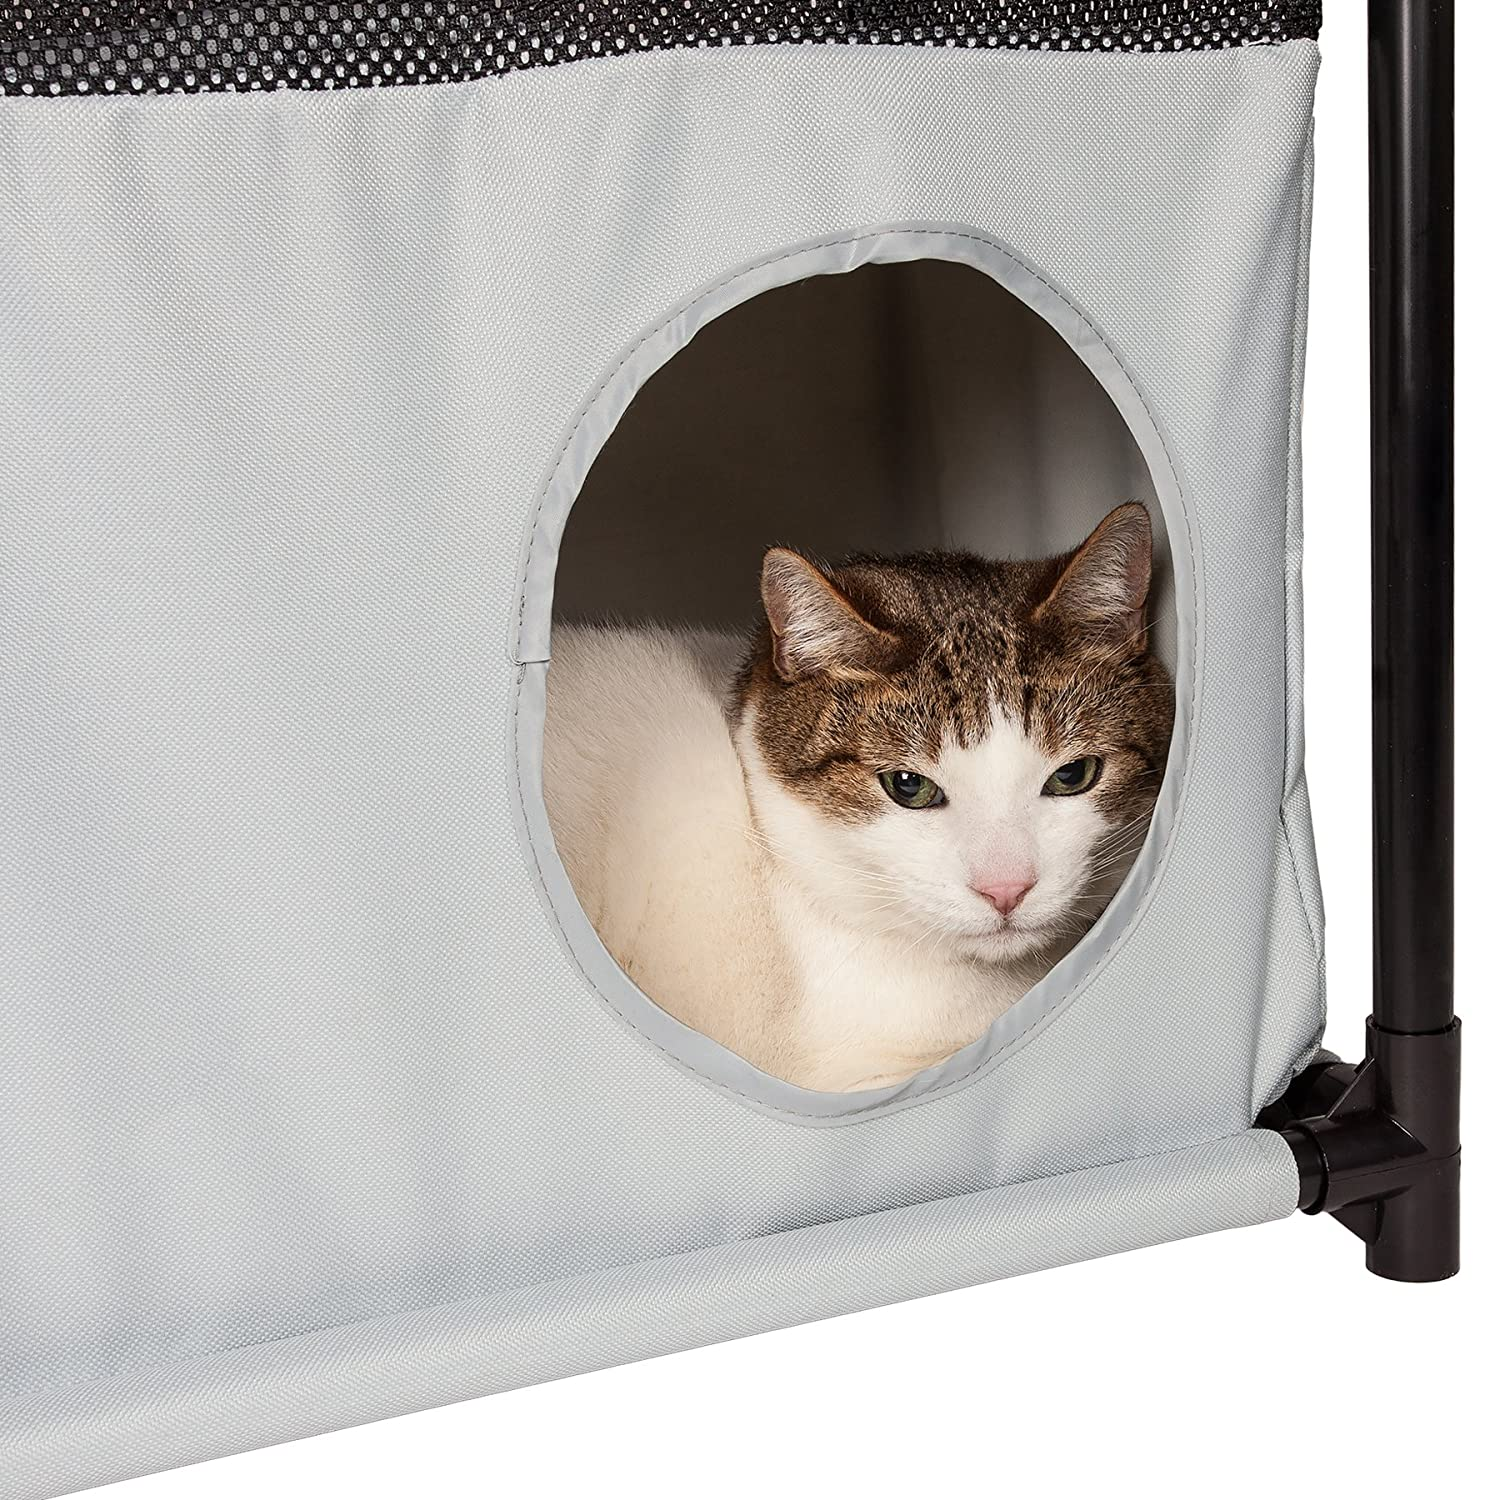 One Size Black//White Pet Life Kitty Square Obstacle Soft Folding Sturdy Play Active Collapsible Travel Pet Cat House Furniture